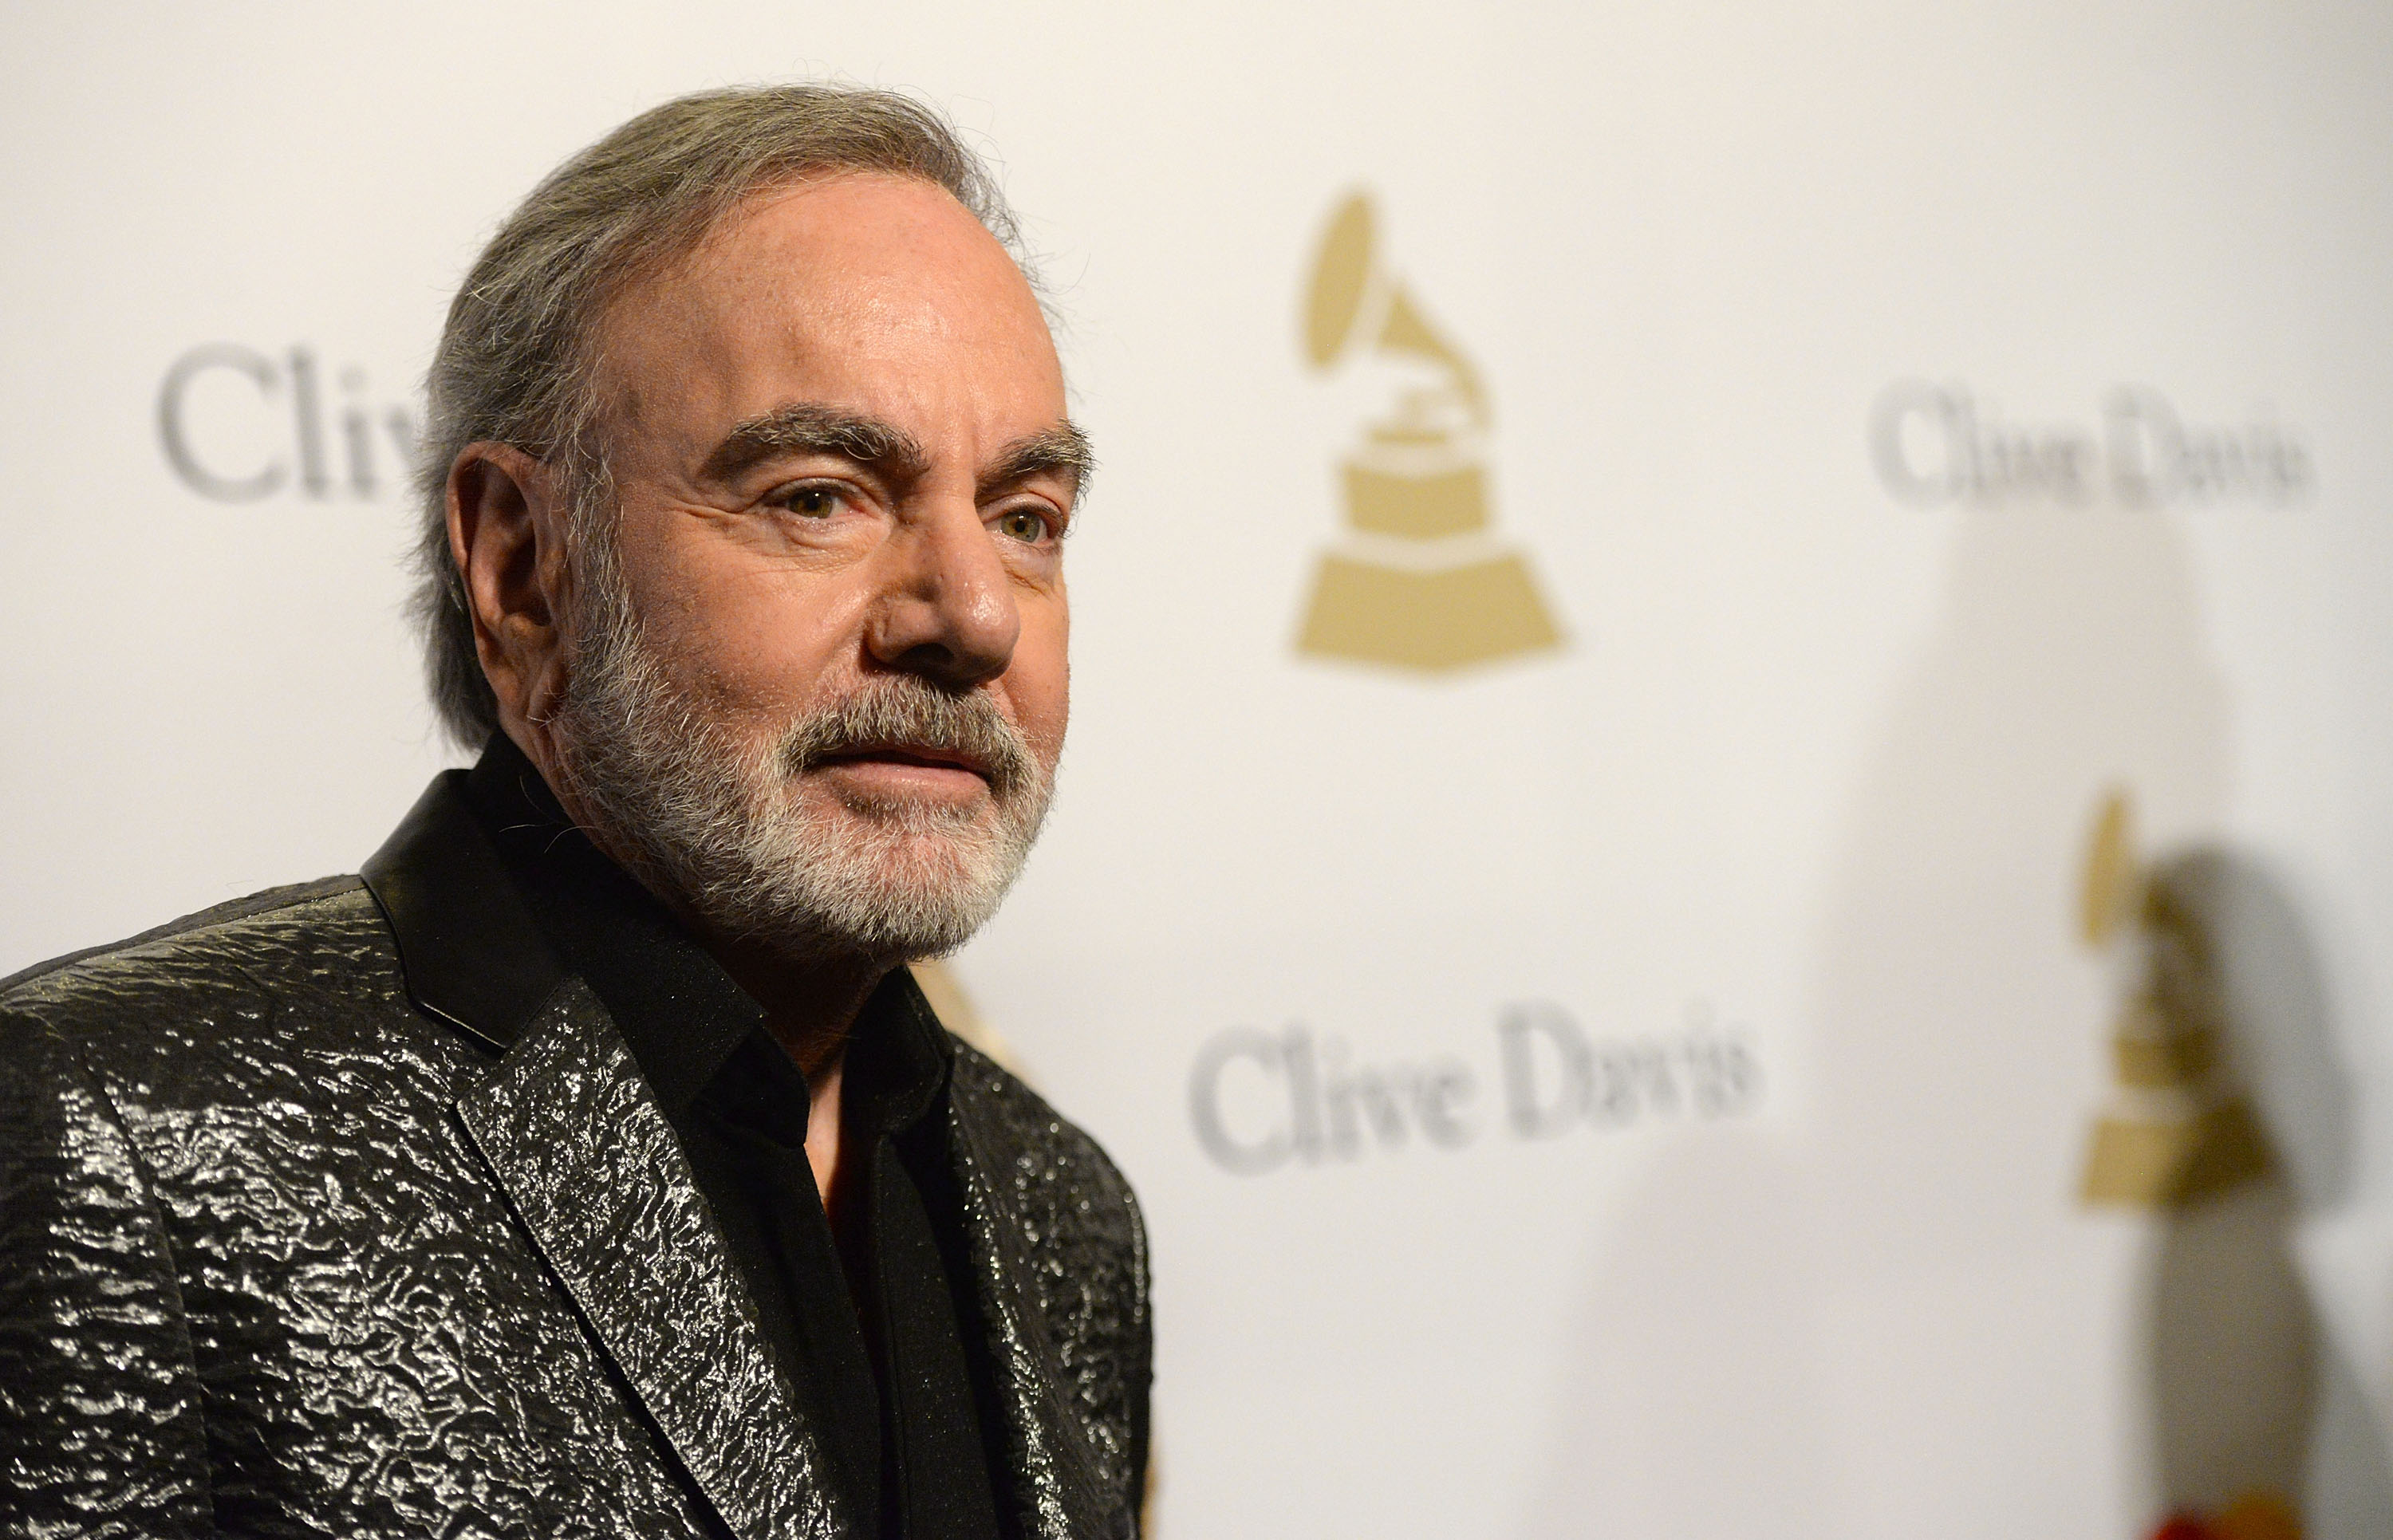 Neil Diamond attends the Clive Davis annual Pre-Grammy Gala in Beverly Hills, California on Feb. 11, 2017.